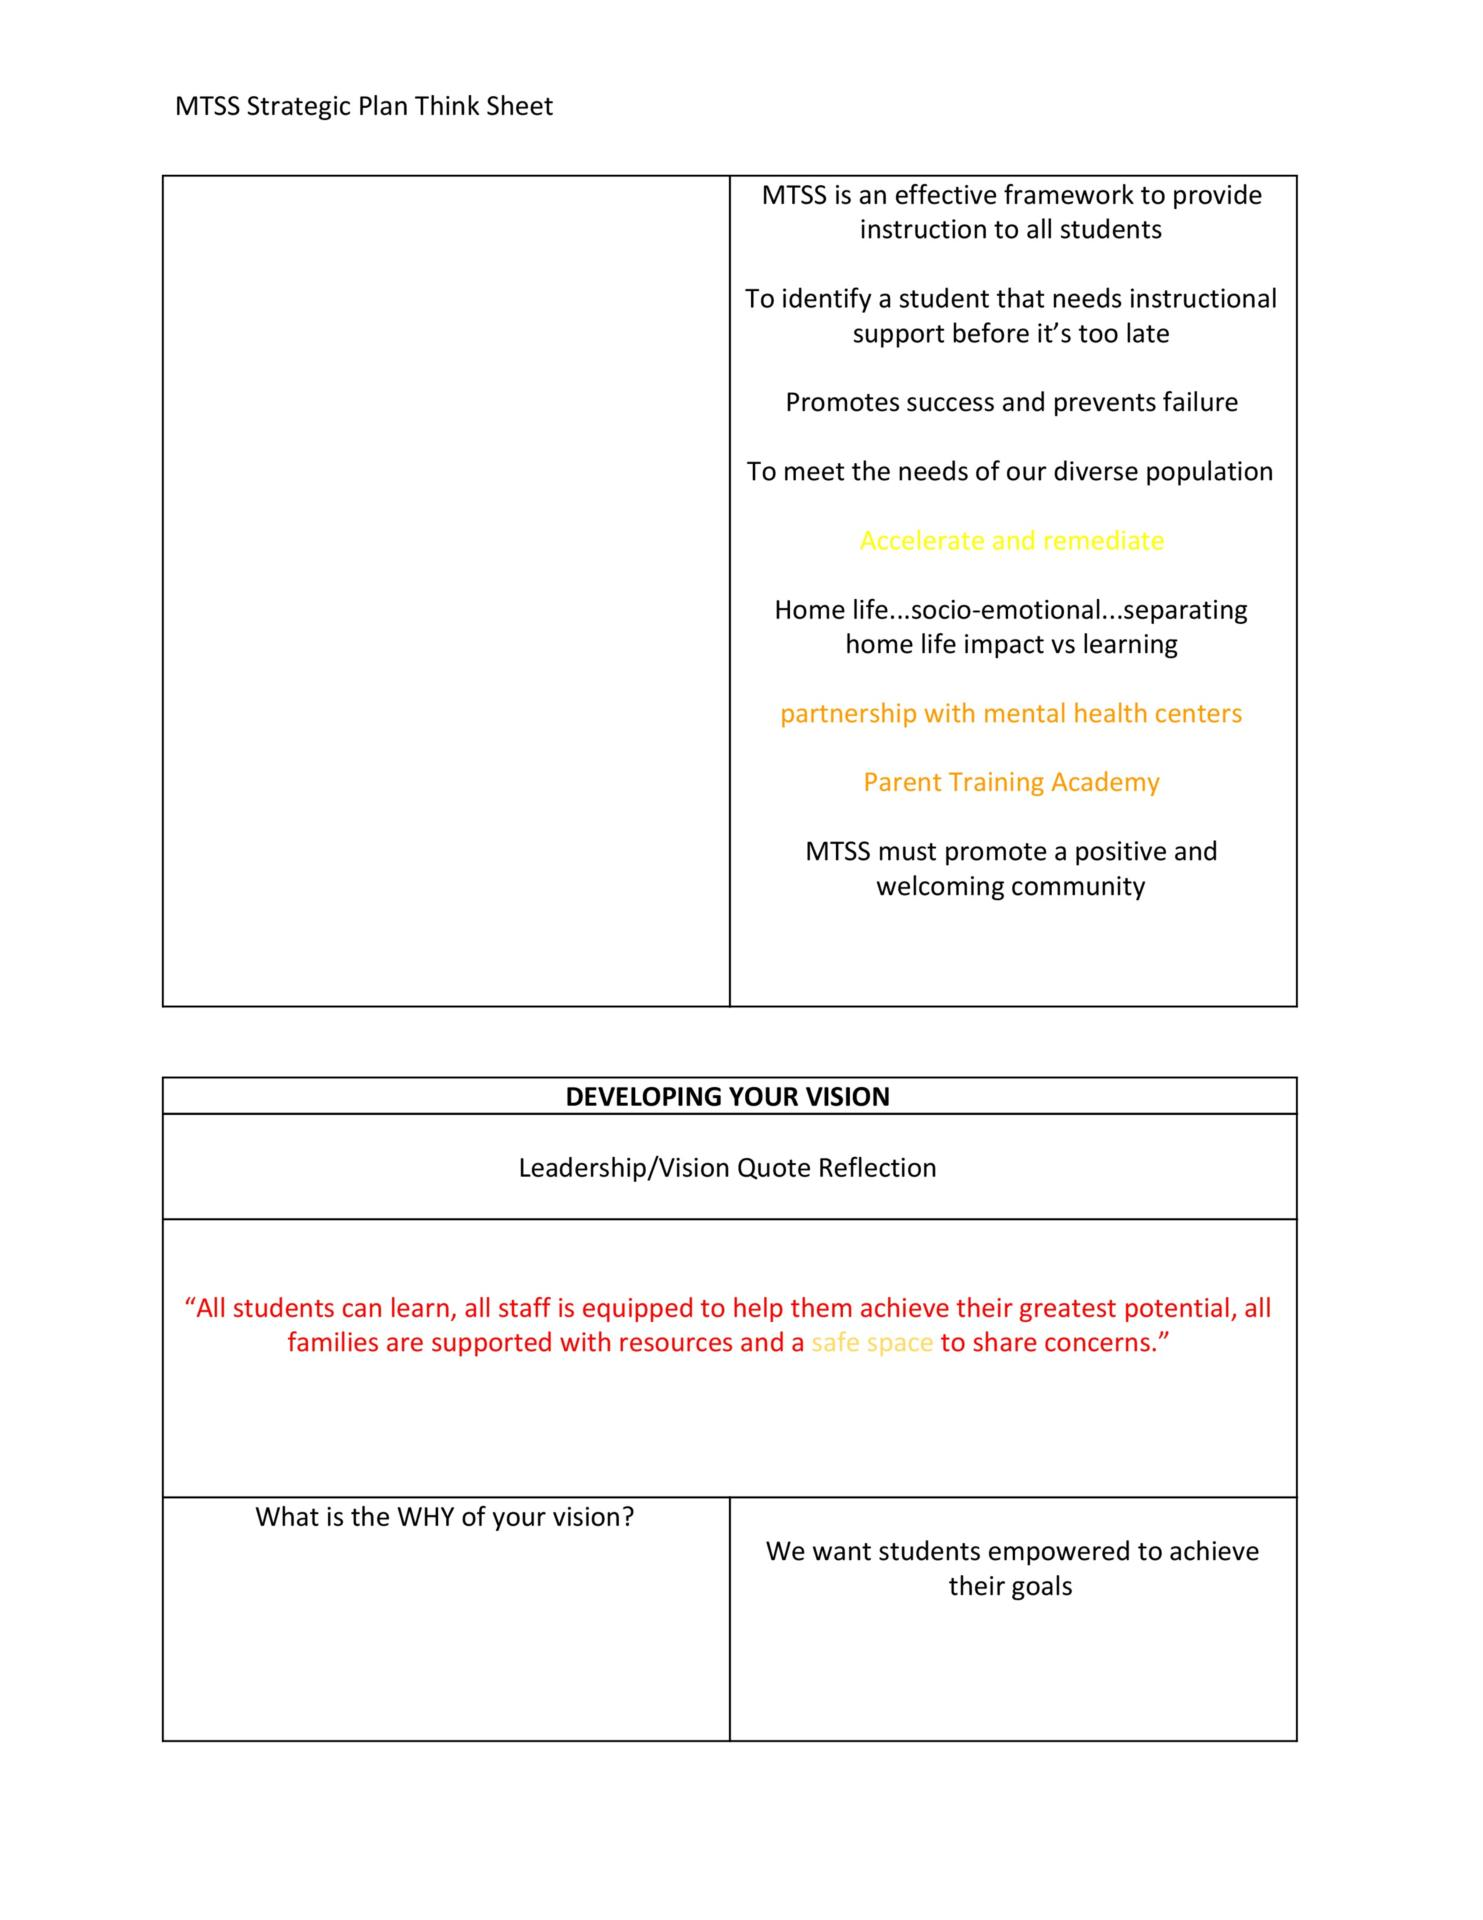 MTSS Strategic Plan Think Sheet Page 2